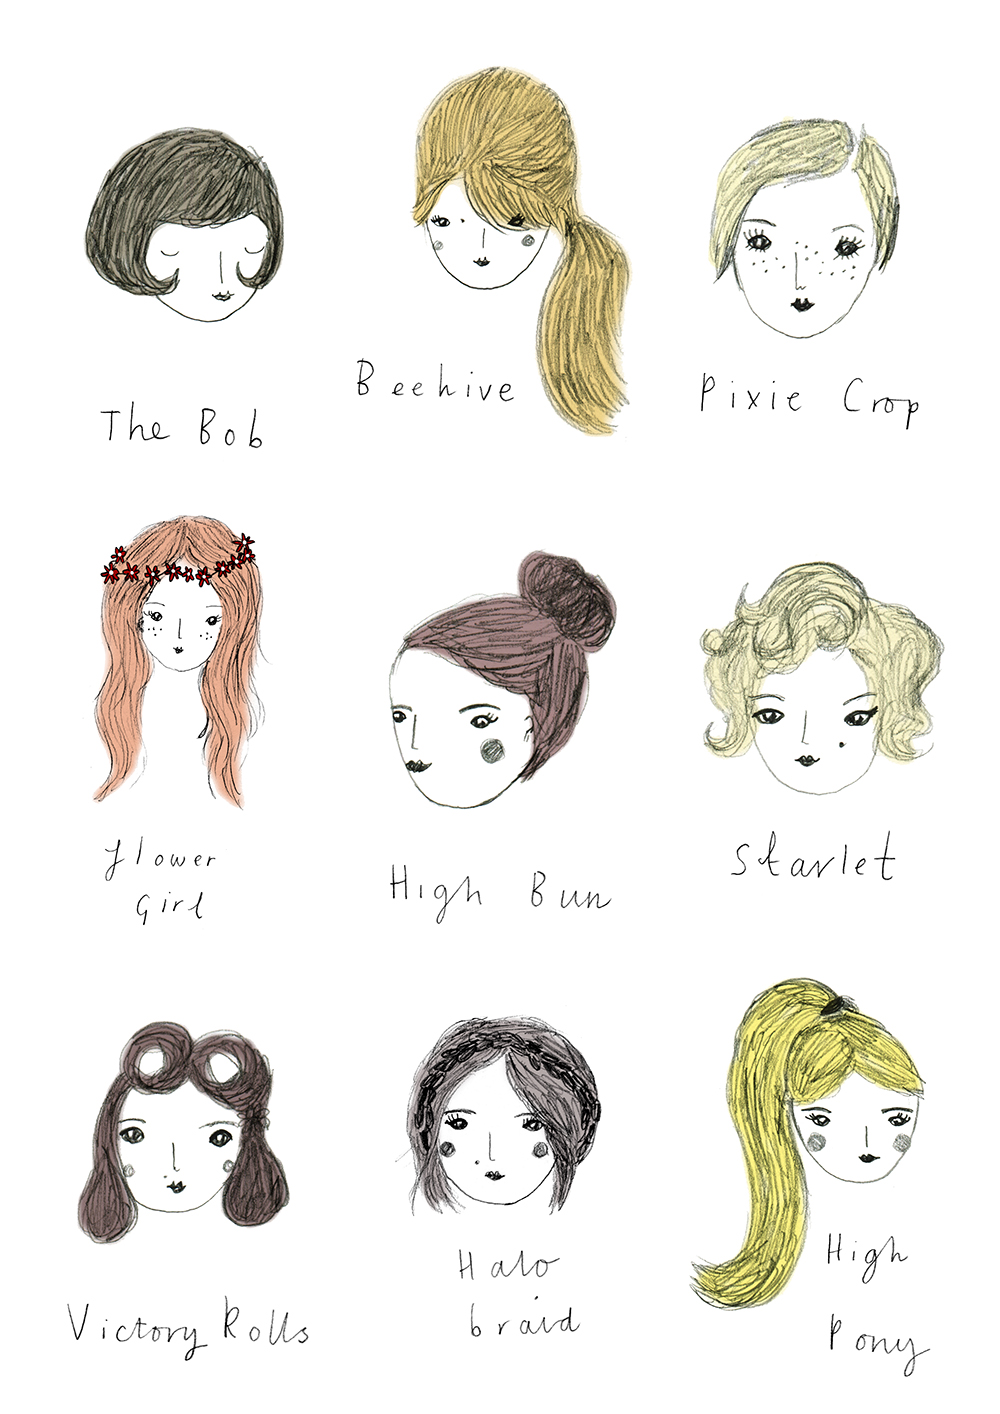 hairstyles_boden_illustration.jpg